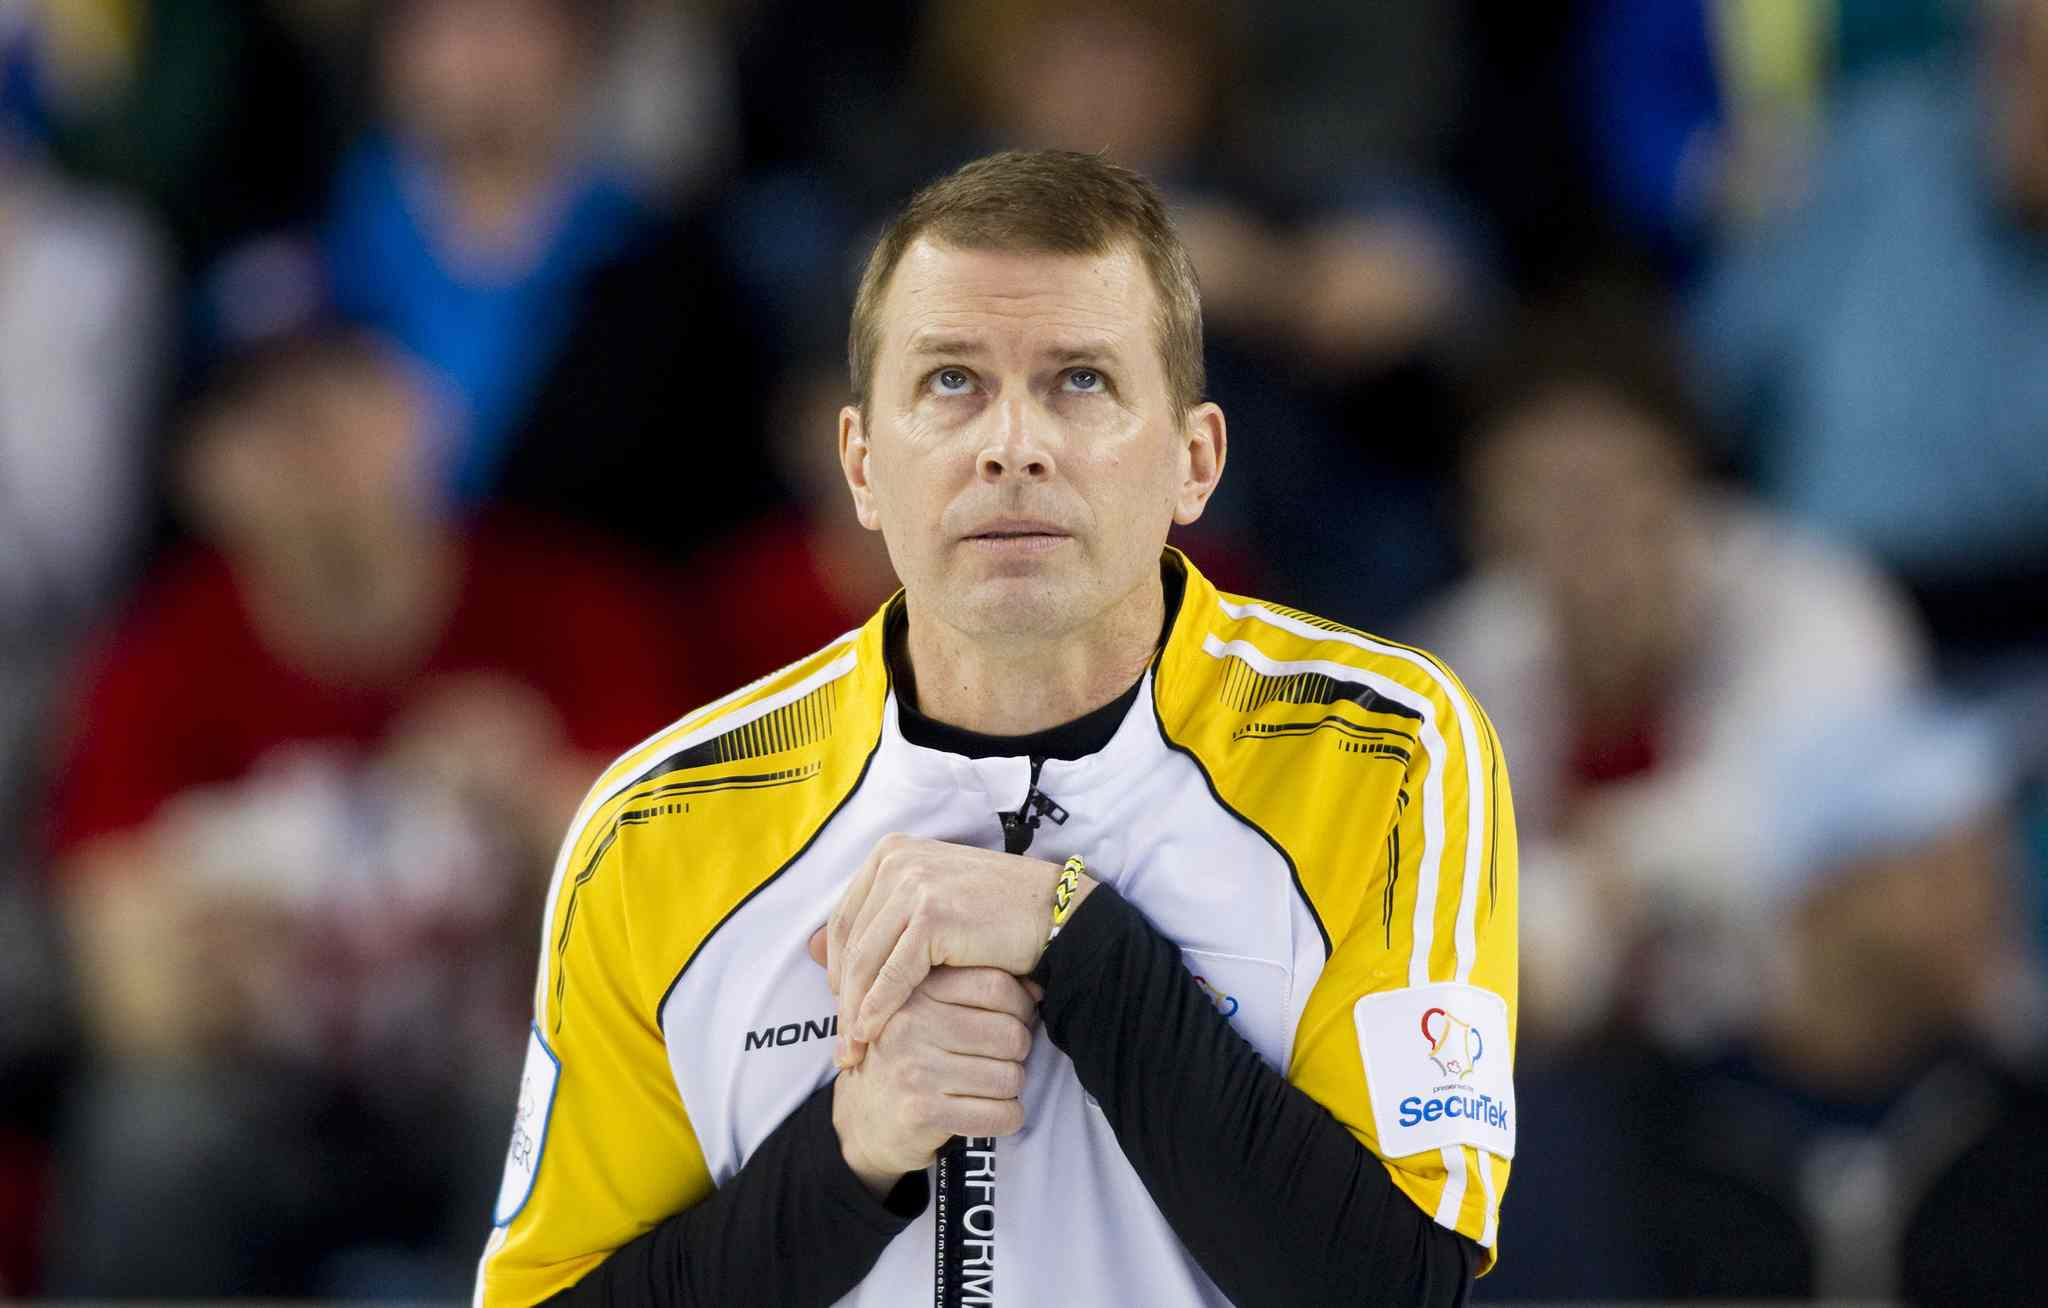 As Jeff Stoughton comes home with a bronze medal, his future is uncertain. But he's had a heck of a past: